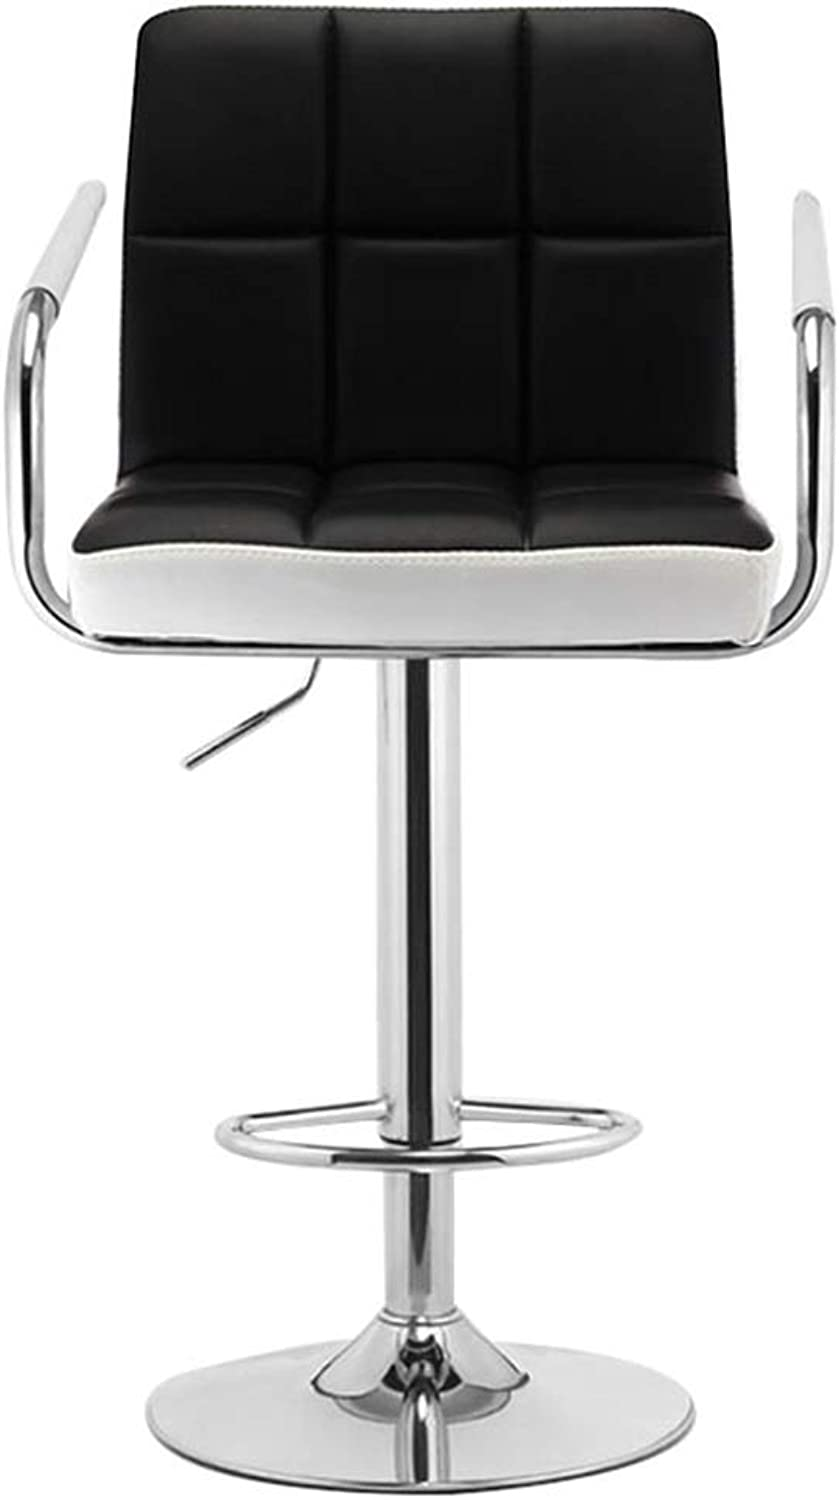 Bar Stool Footrest Dining Chair Modern Swivel Adjustable Armrest Bar Chair, PU Leather Bar Stool Kitchen   Counter   Office, Maximum Load 150kg, Black and White